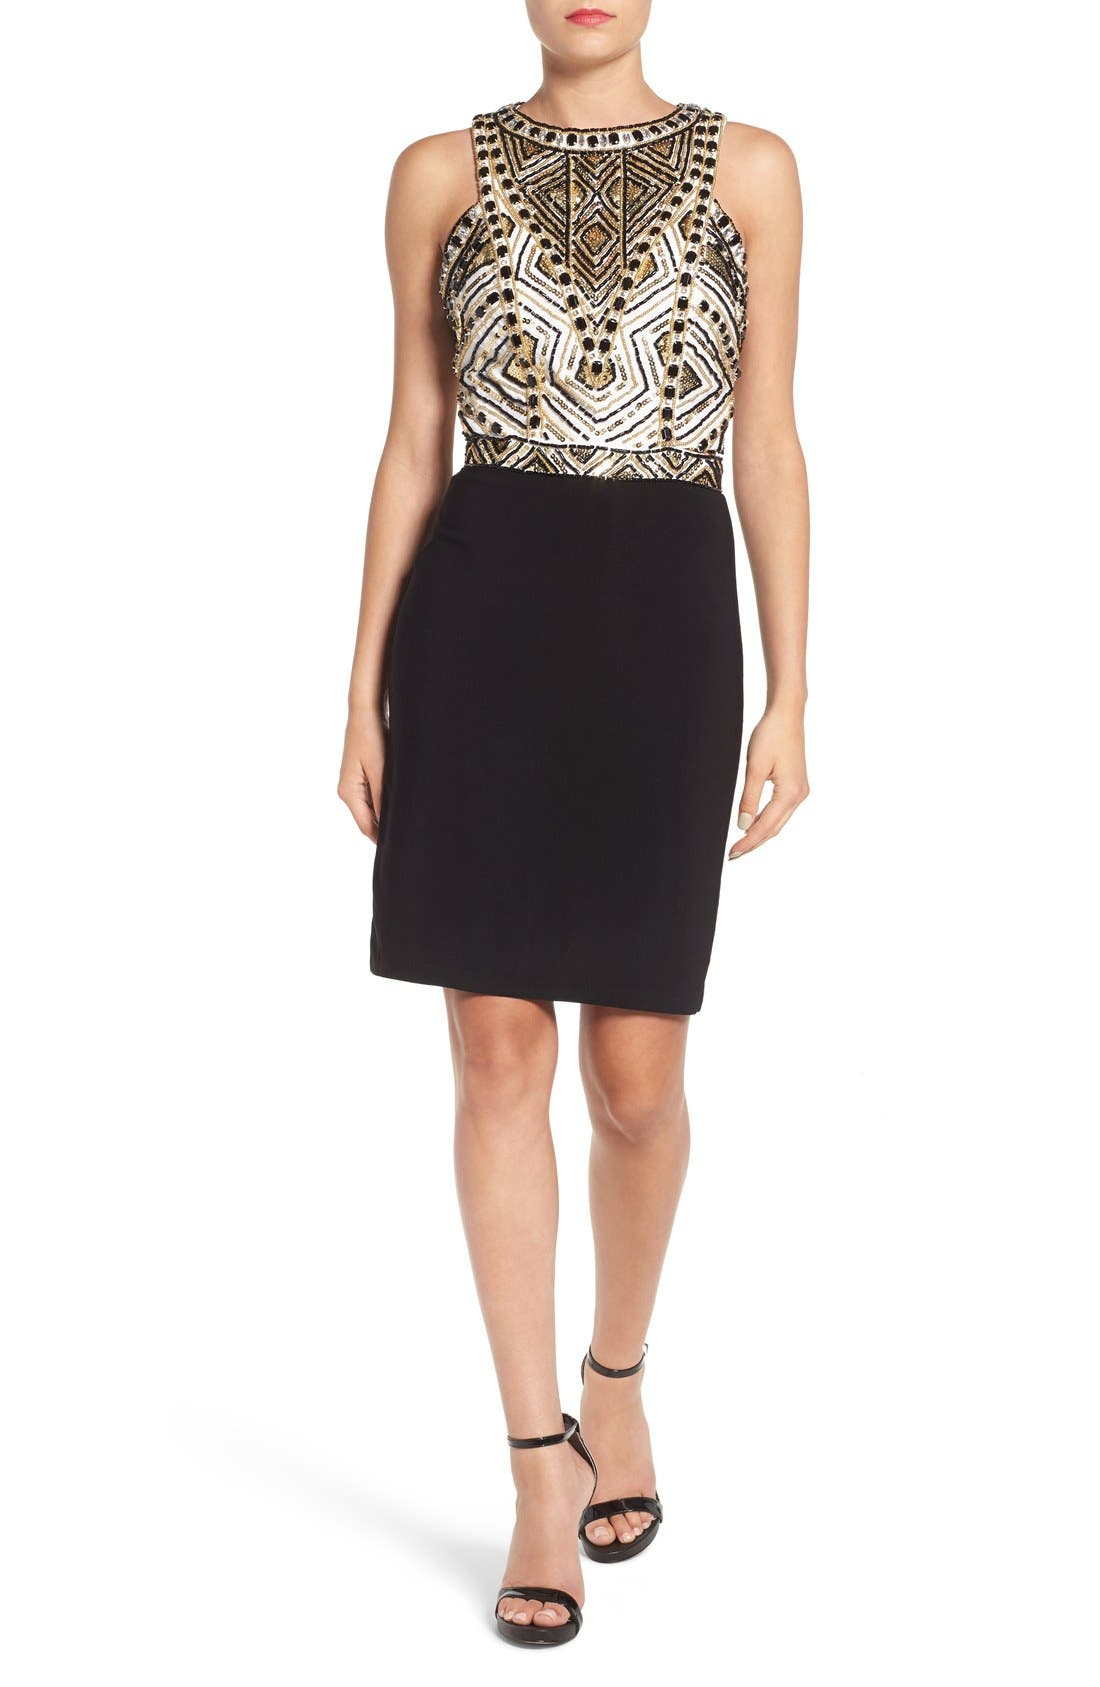 Alternate Image 1 Selected - Mac Duggal Embellished Body-Con Dress